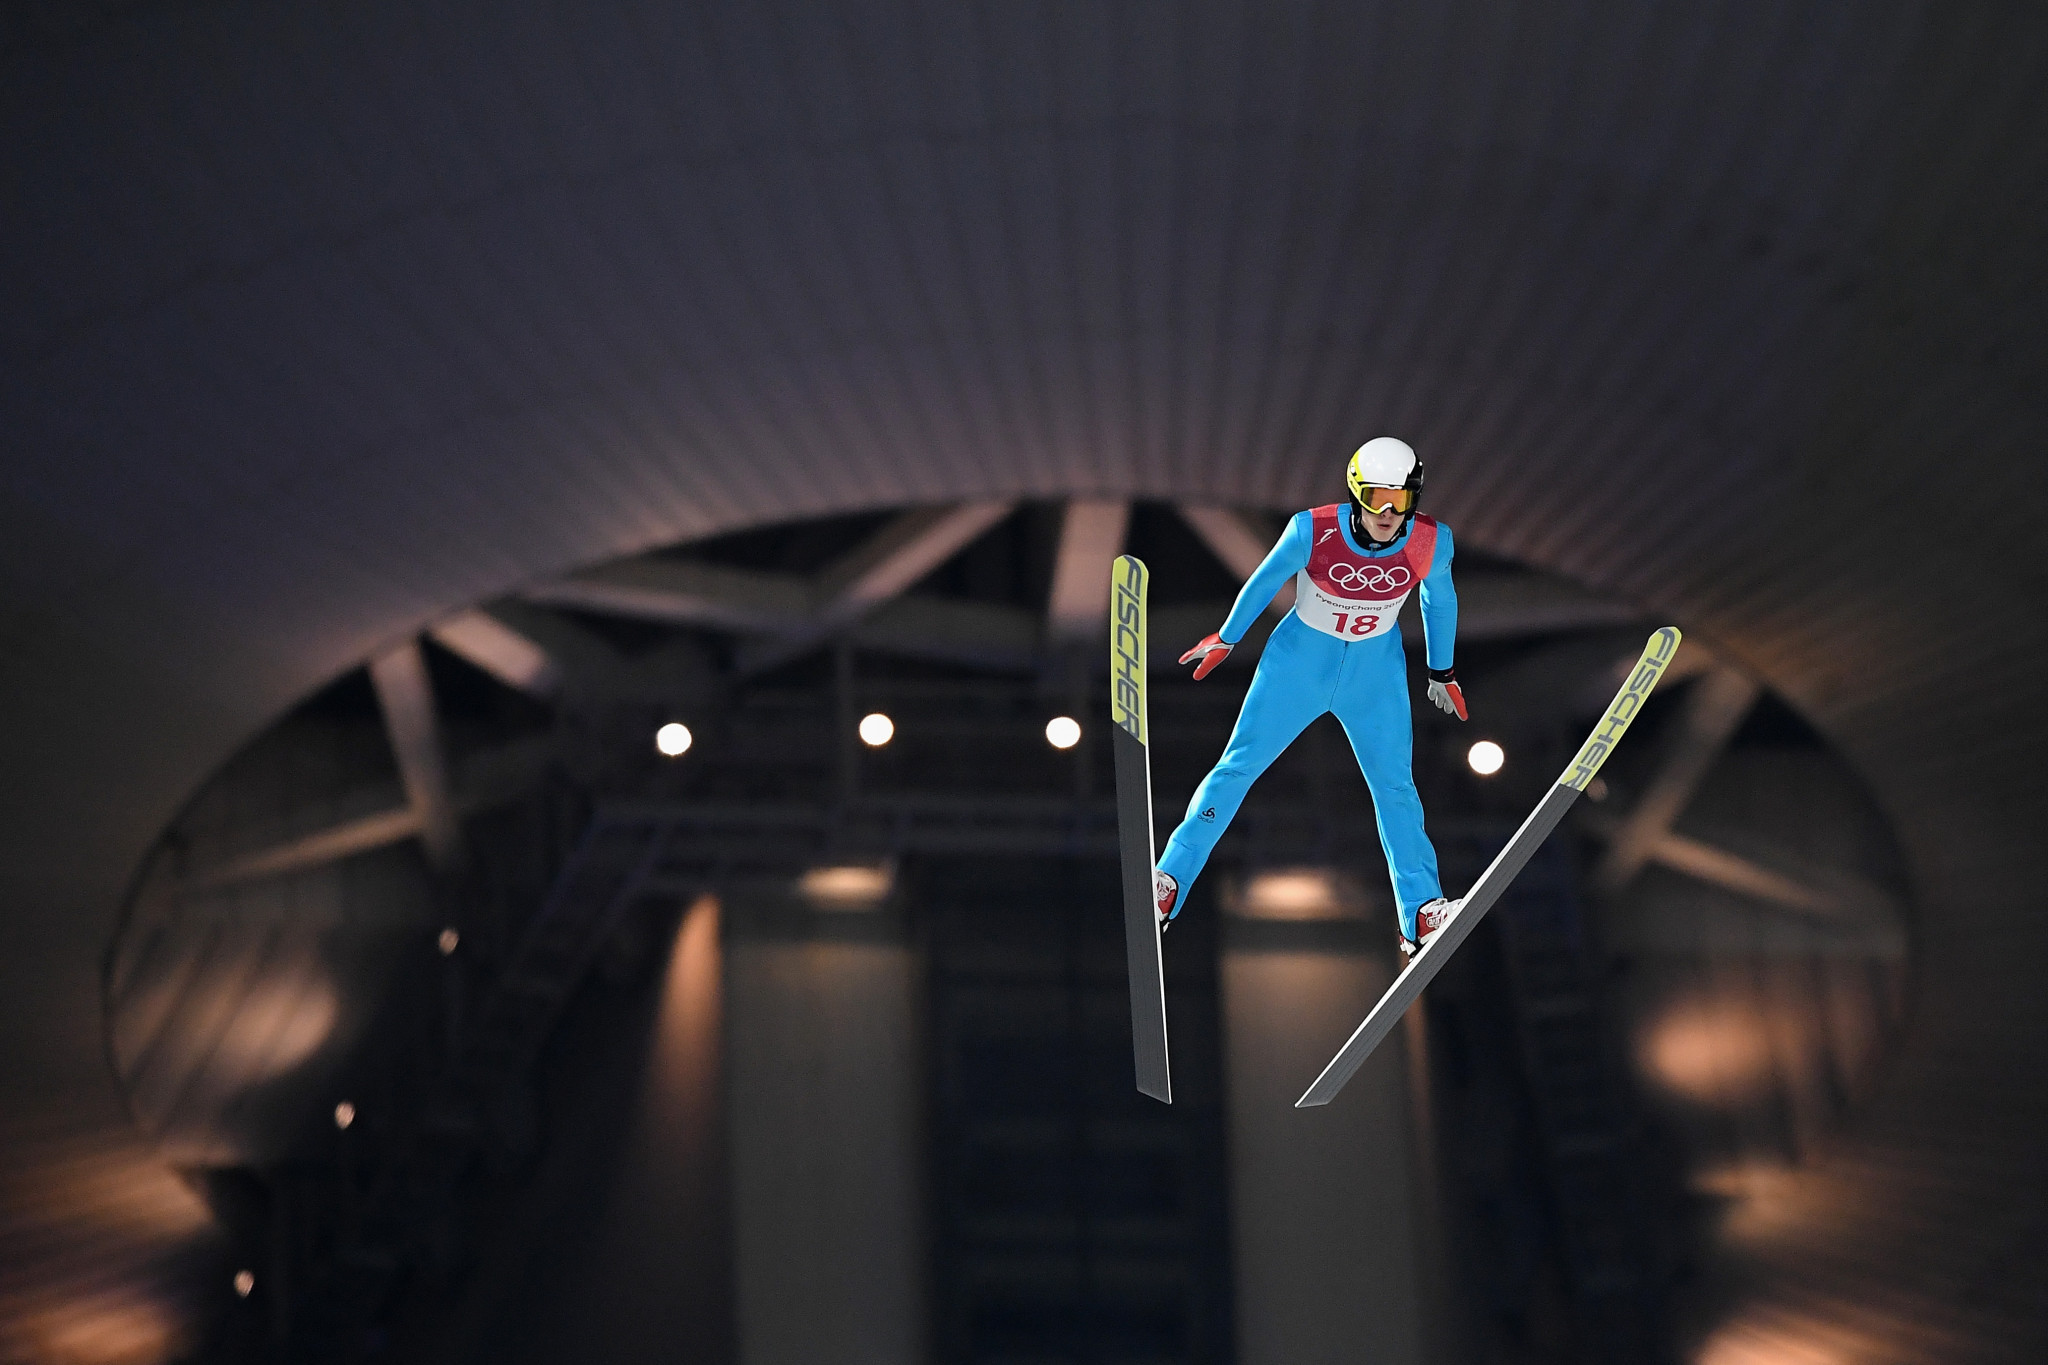 Jiroutek appointed French ski jumping coach after Kuttin U-turn